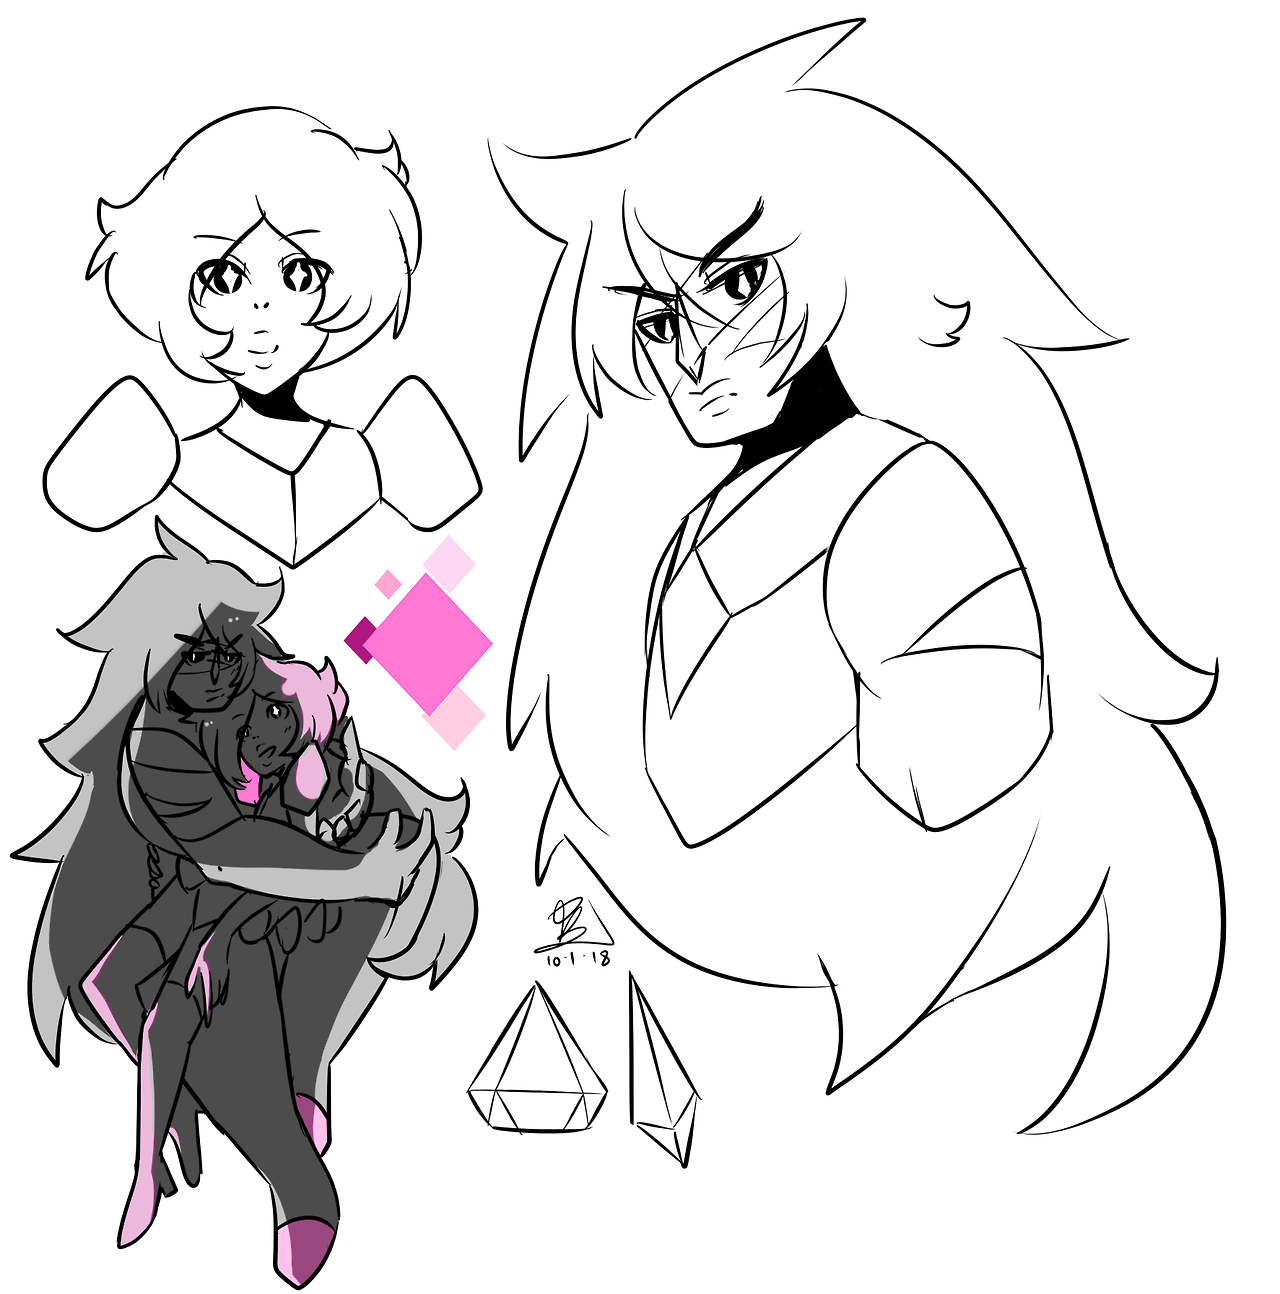 jasper's gem is in a shape similar to a diamond tbh